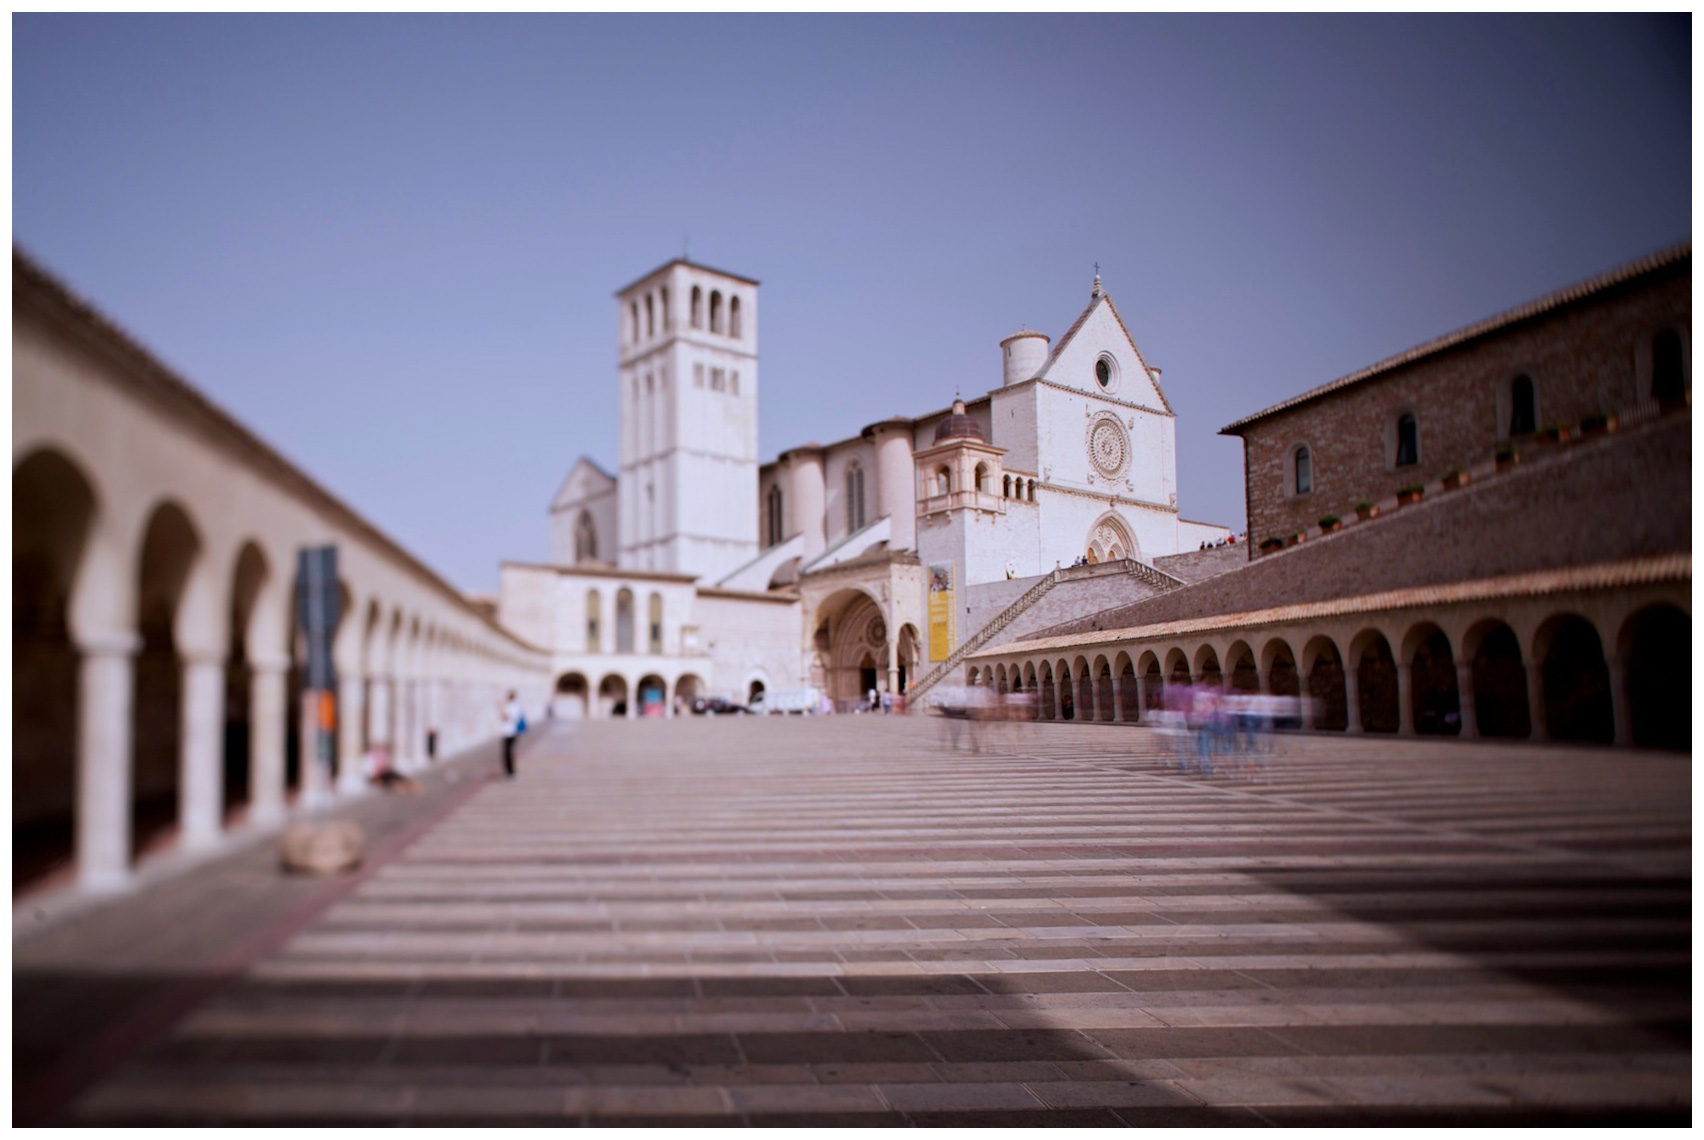 Basilica di San Francesco, in Assisi